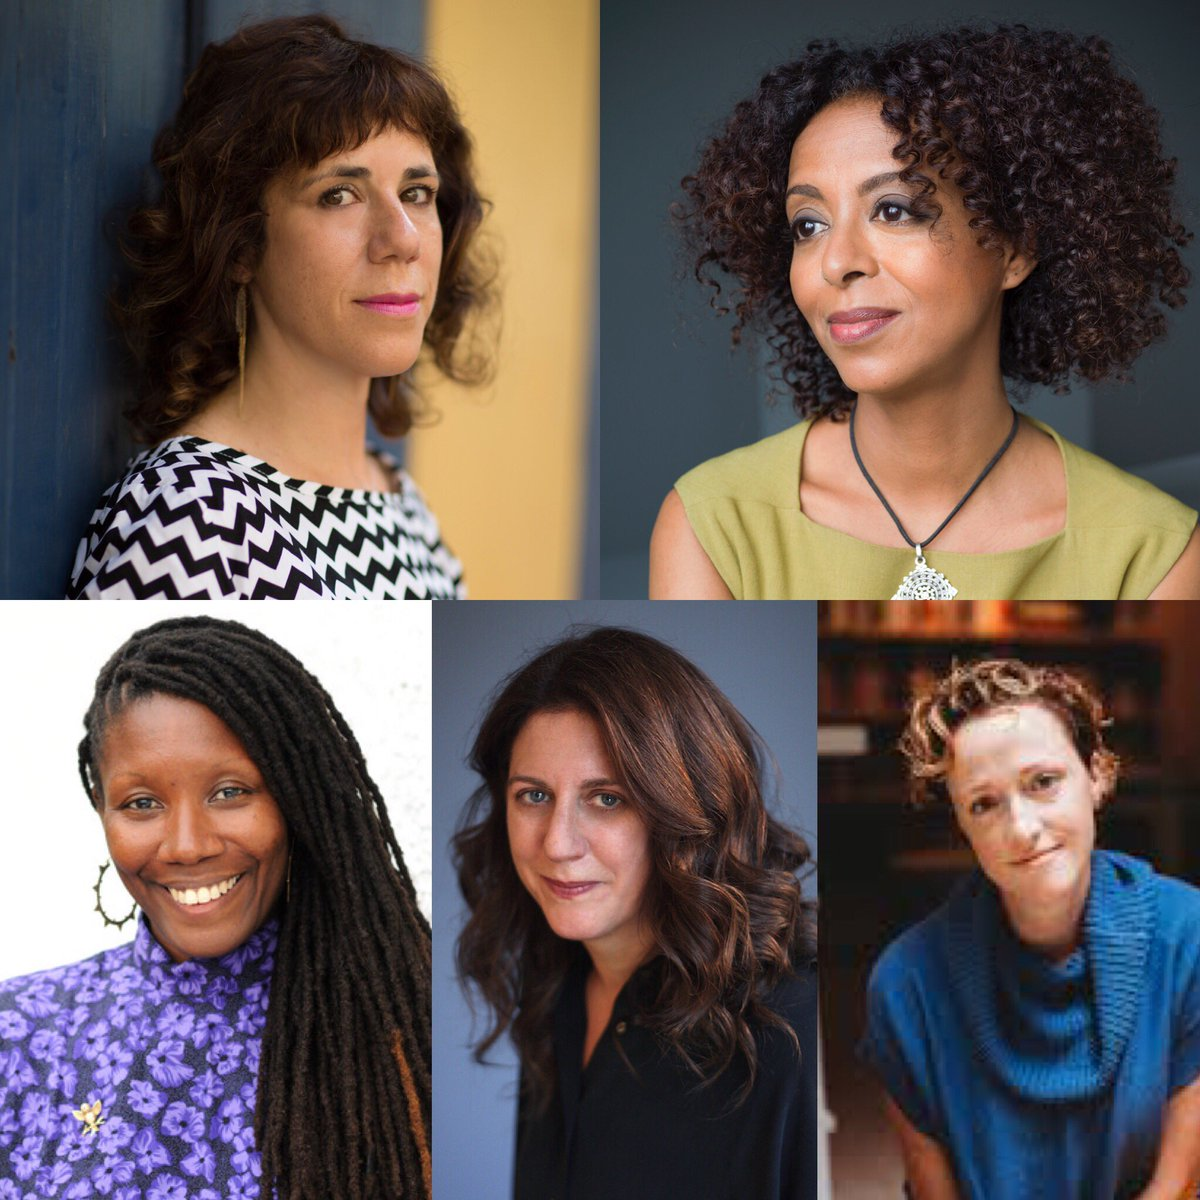 TONIGHT at 8: The @FranklinParkBK Reading Series hosts stellar authors @MaazaMengiste, @jamiattenberg, @ndennis_benn, @mdermansky, and Keetje Kuipers! #Free  #crownheights #readingseries